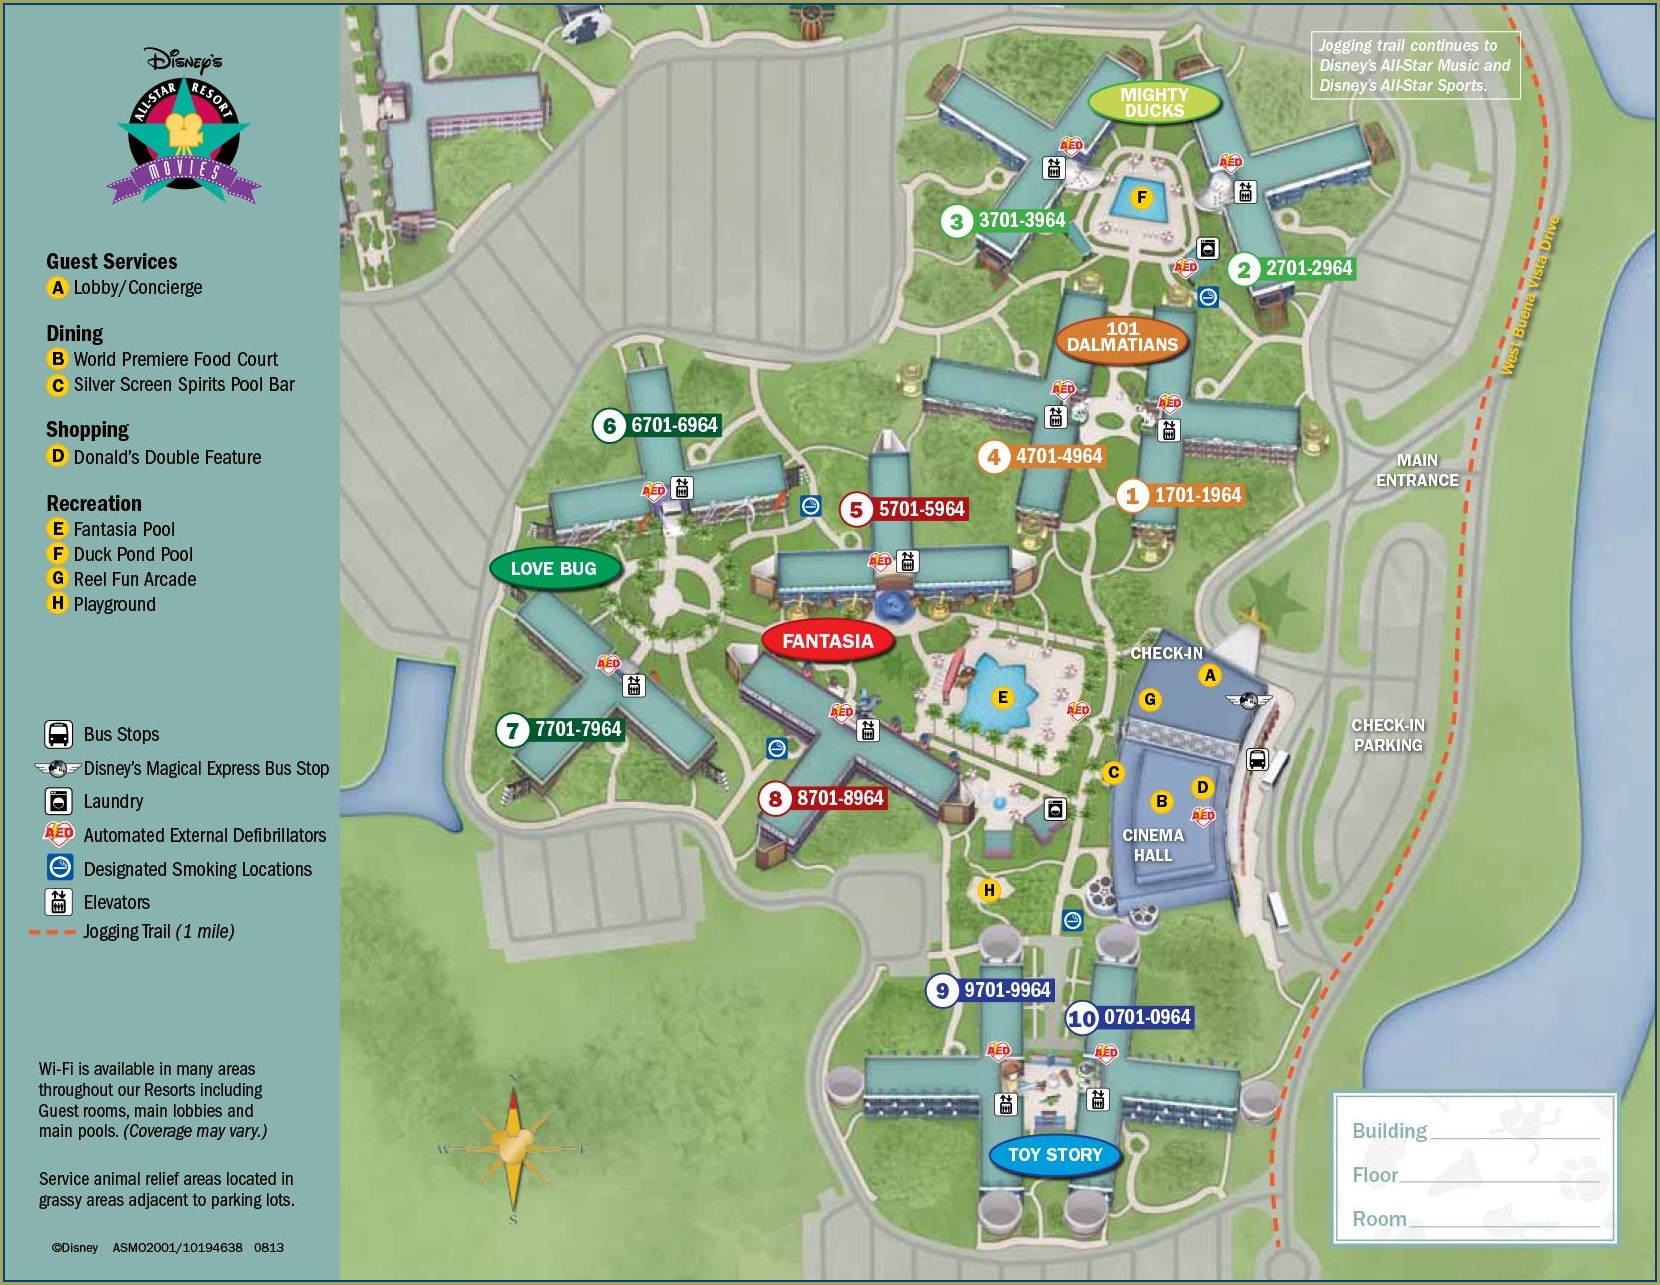 Disney World All Star Resort Map